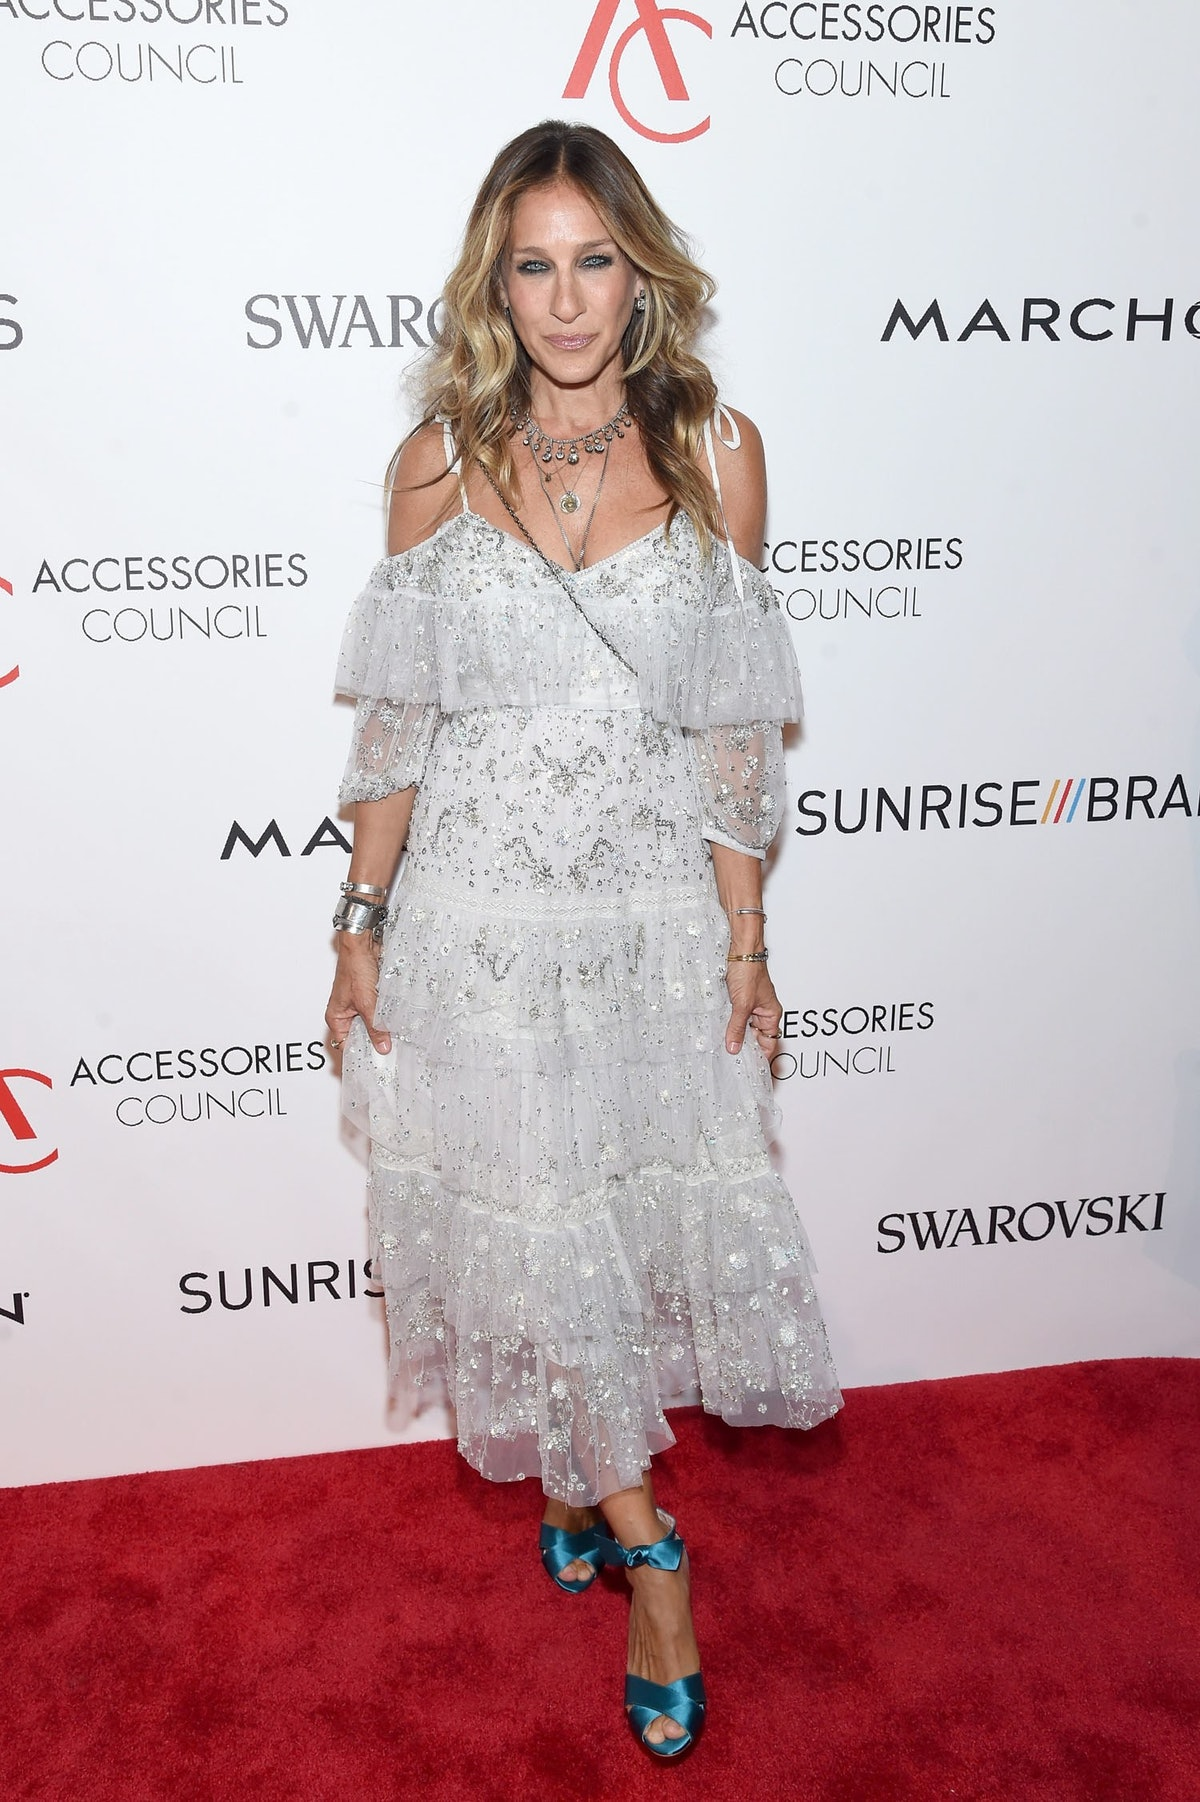 Sarah Jessica Parker is honored at the 20th Anniversary of the ACE Awards.jpg